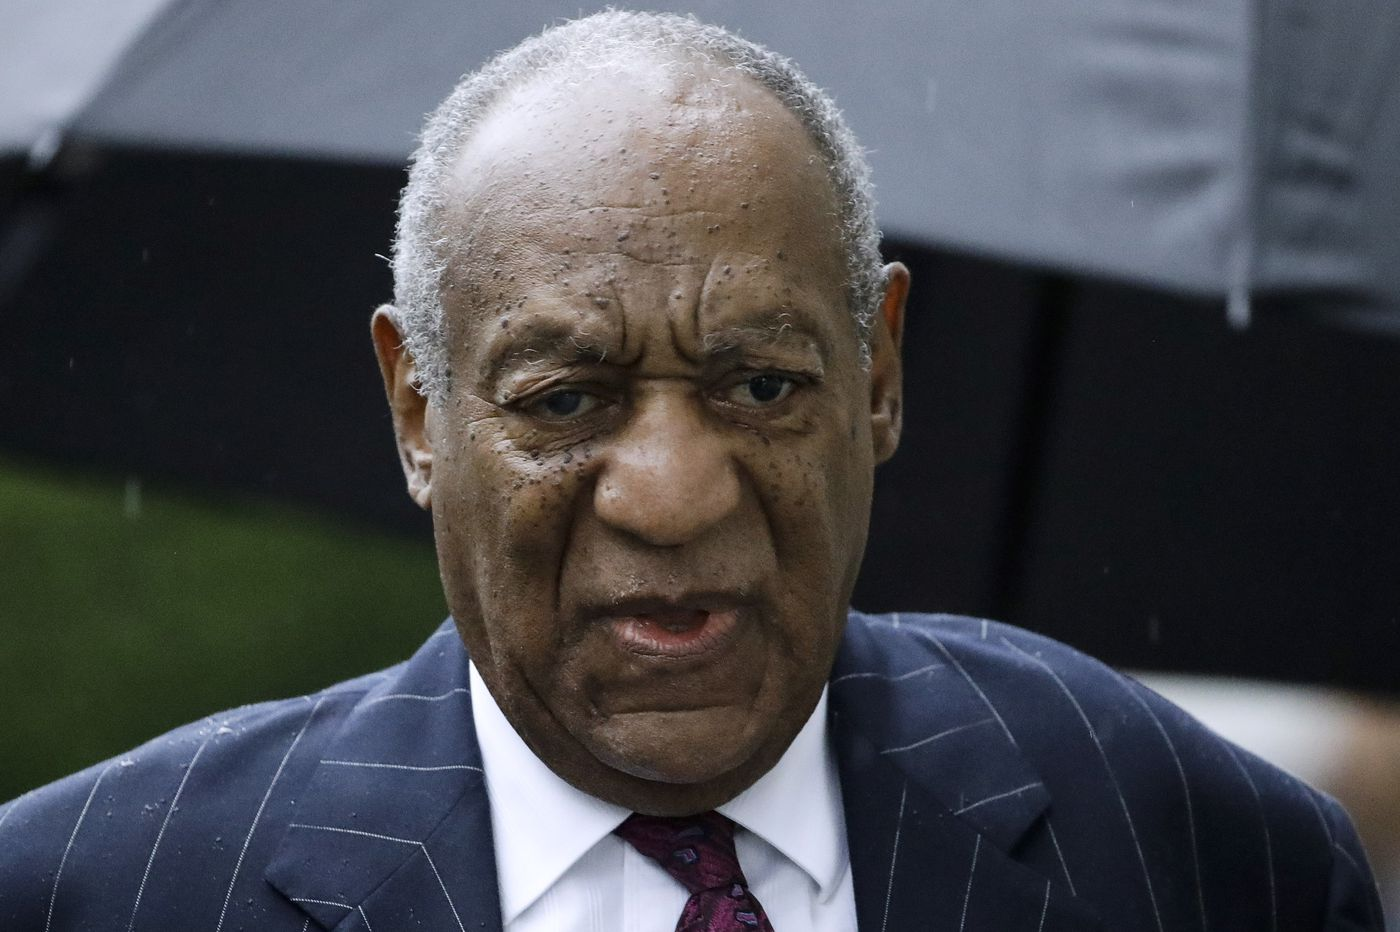 Bill Cosby Agrees to Settle 7 Defamation Cases